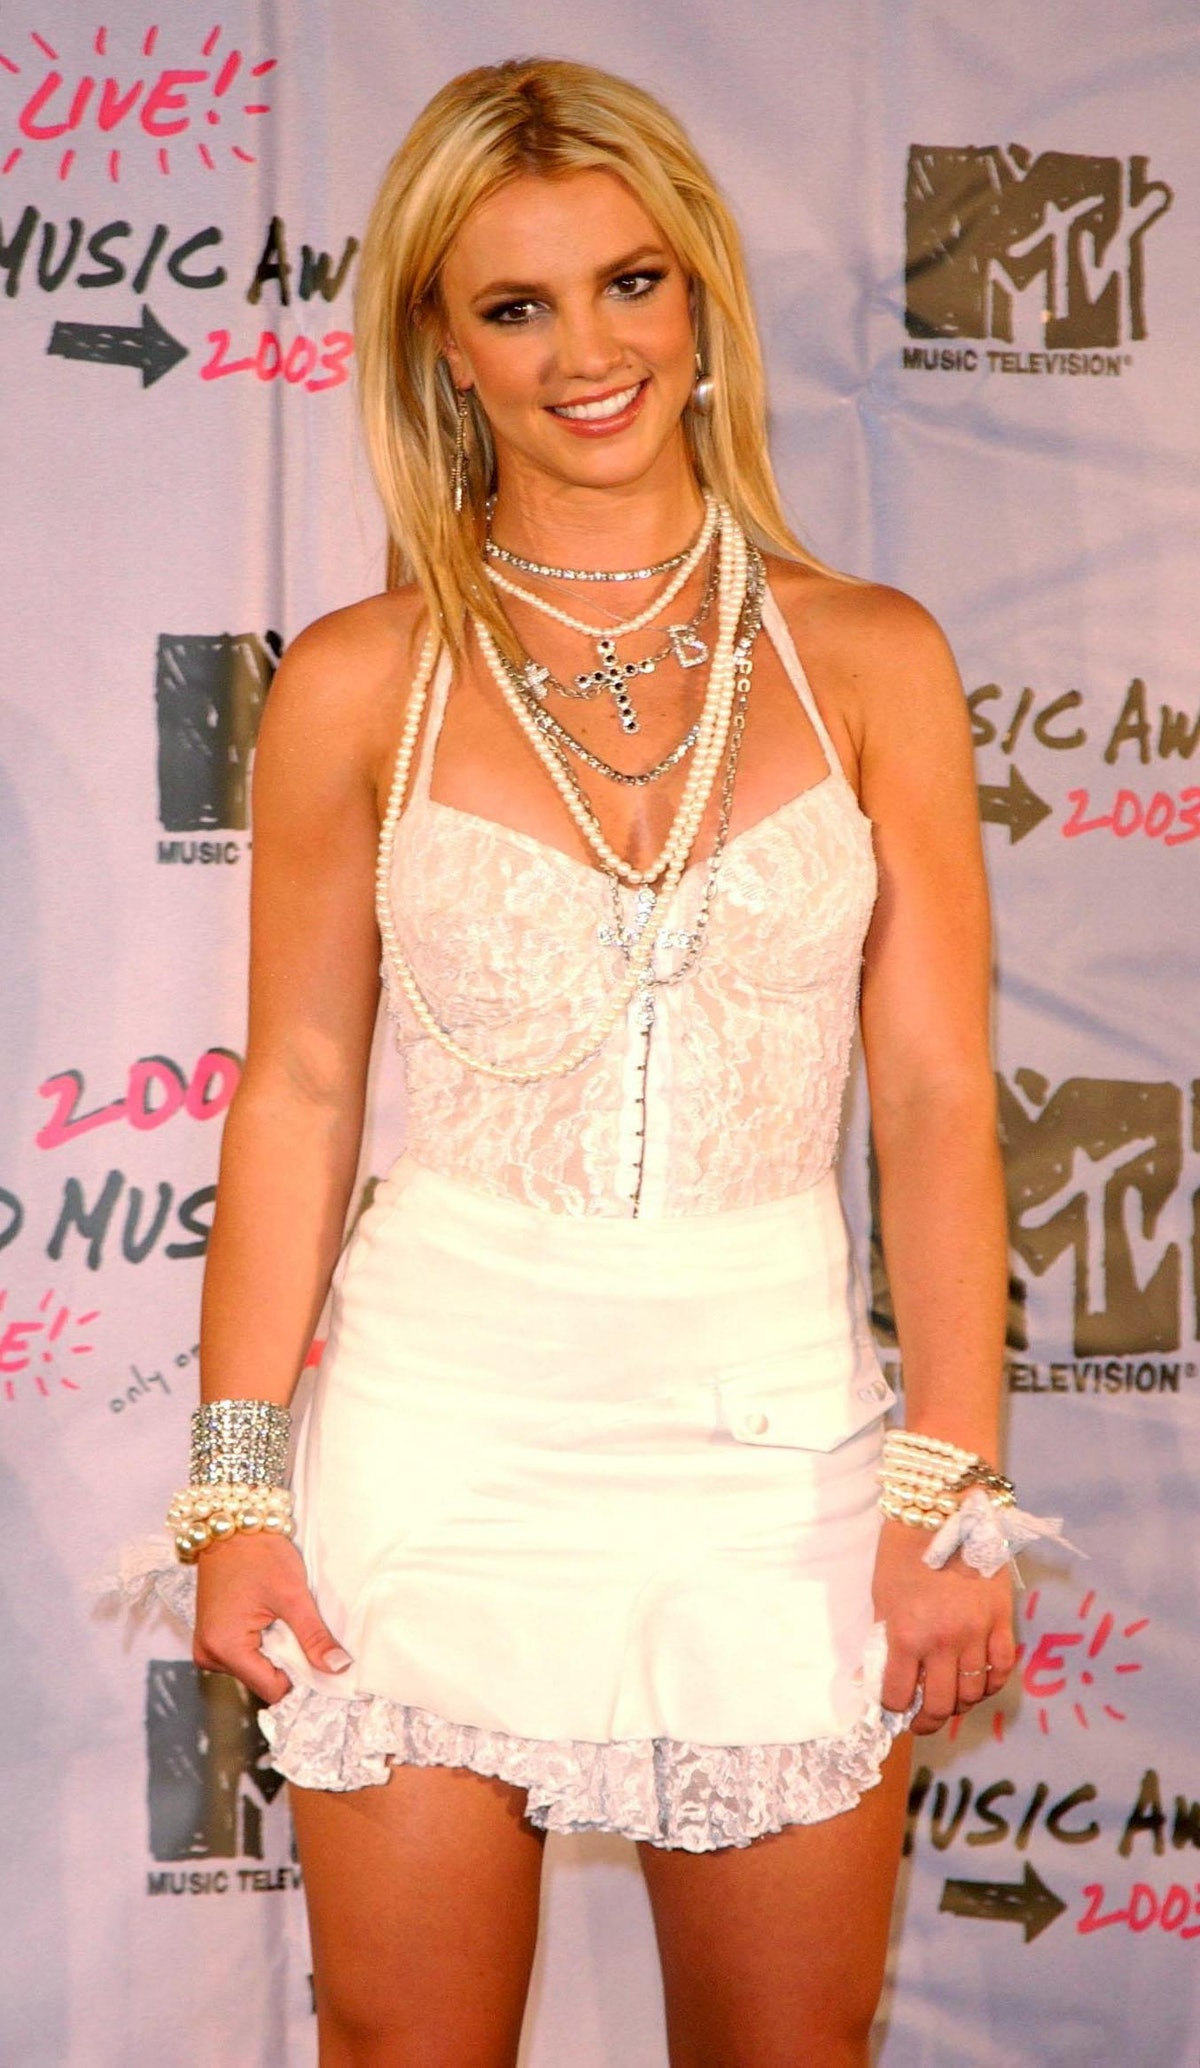 Britney Spears arriving for the MTV Video Music Awards at Radio City Music Hall in New York, USA.  0...